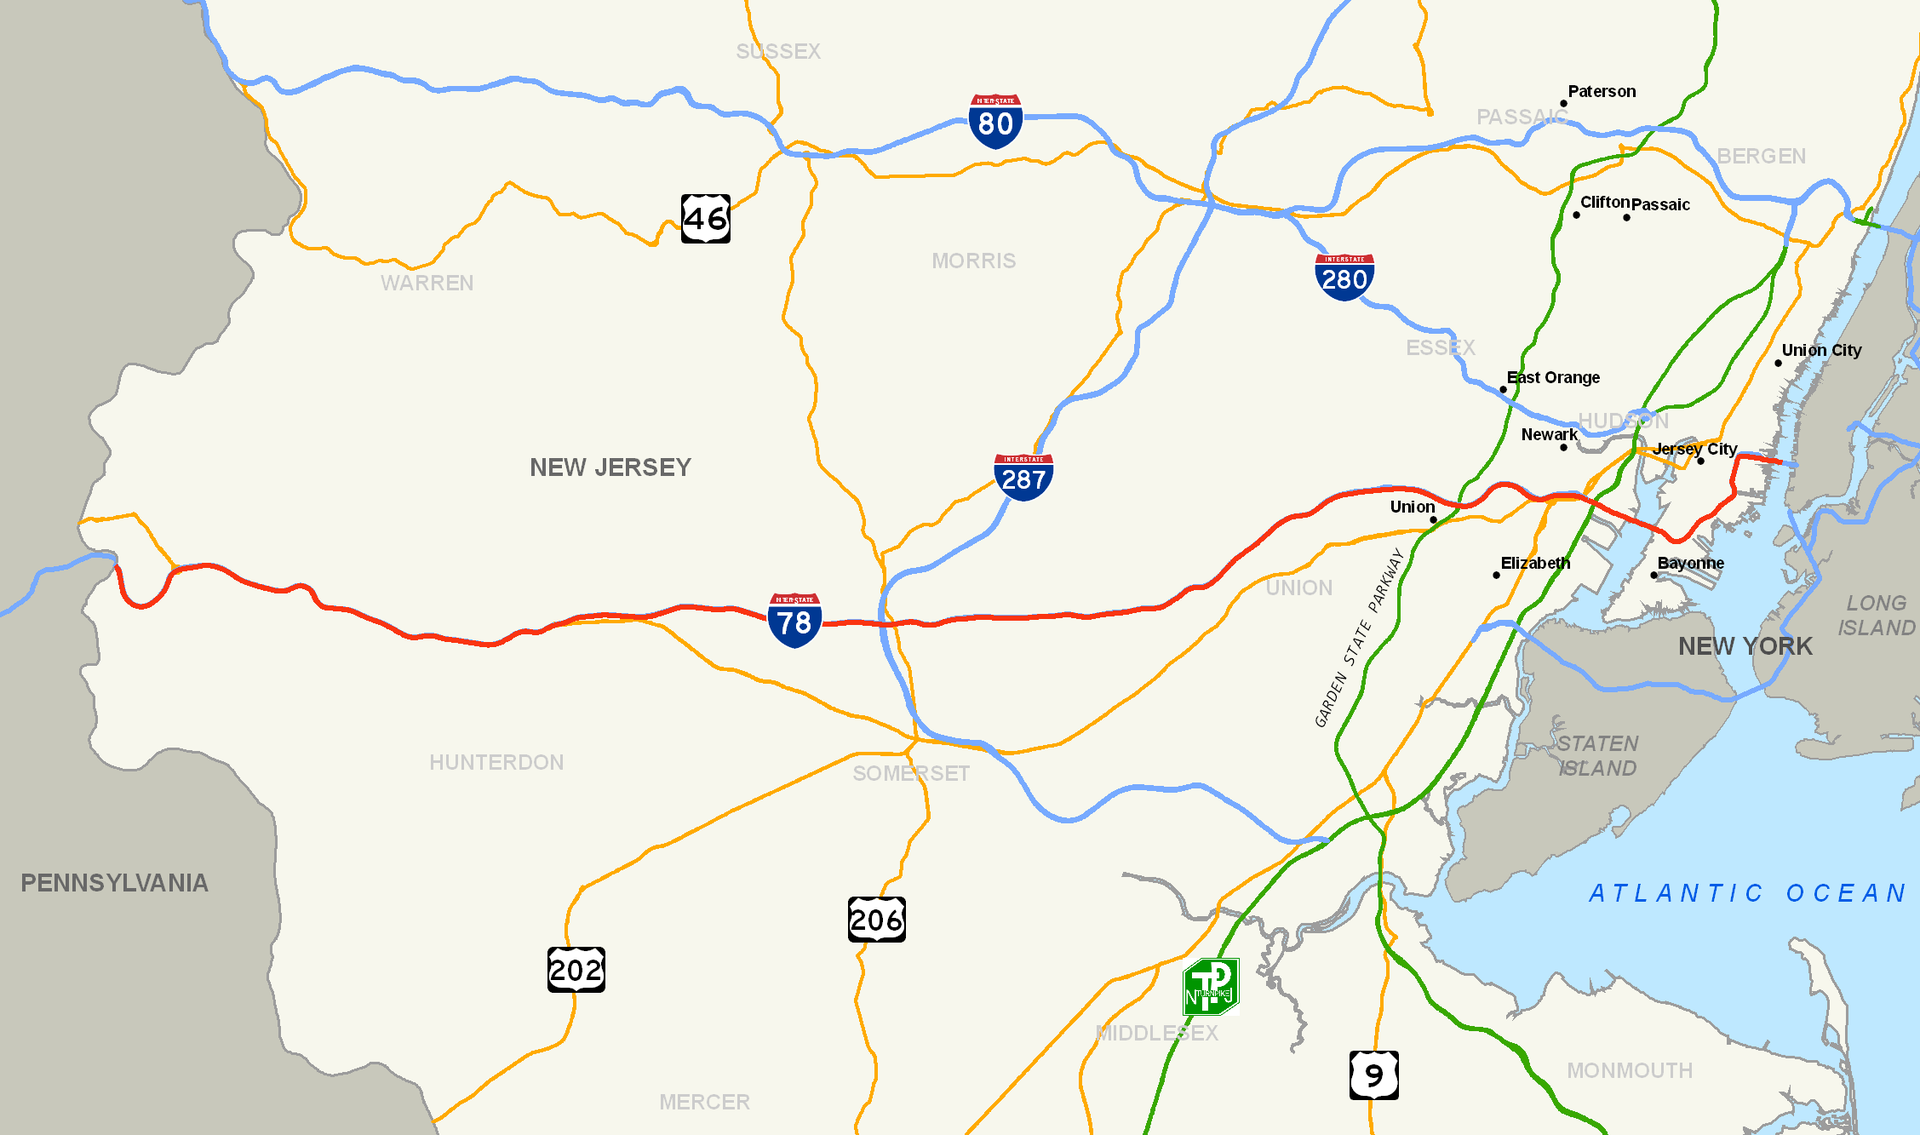 warren nj map with Interstate 78 In New Jersey on Ibat additionally Burlington County Municipalities Map besides Areas Affected Round2 in addition New Jersey together with Passaic zipcodes.